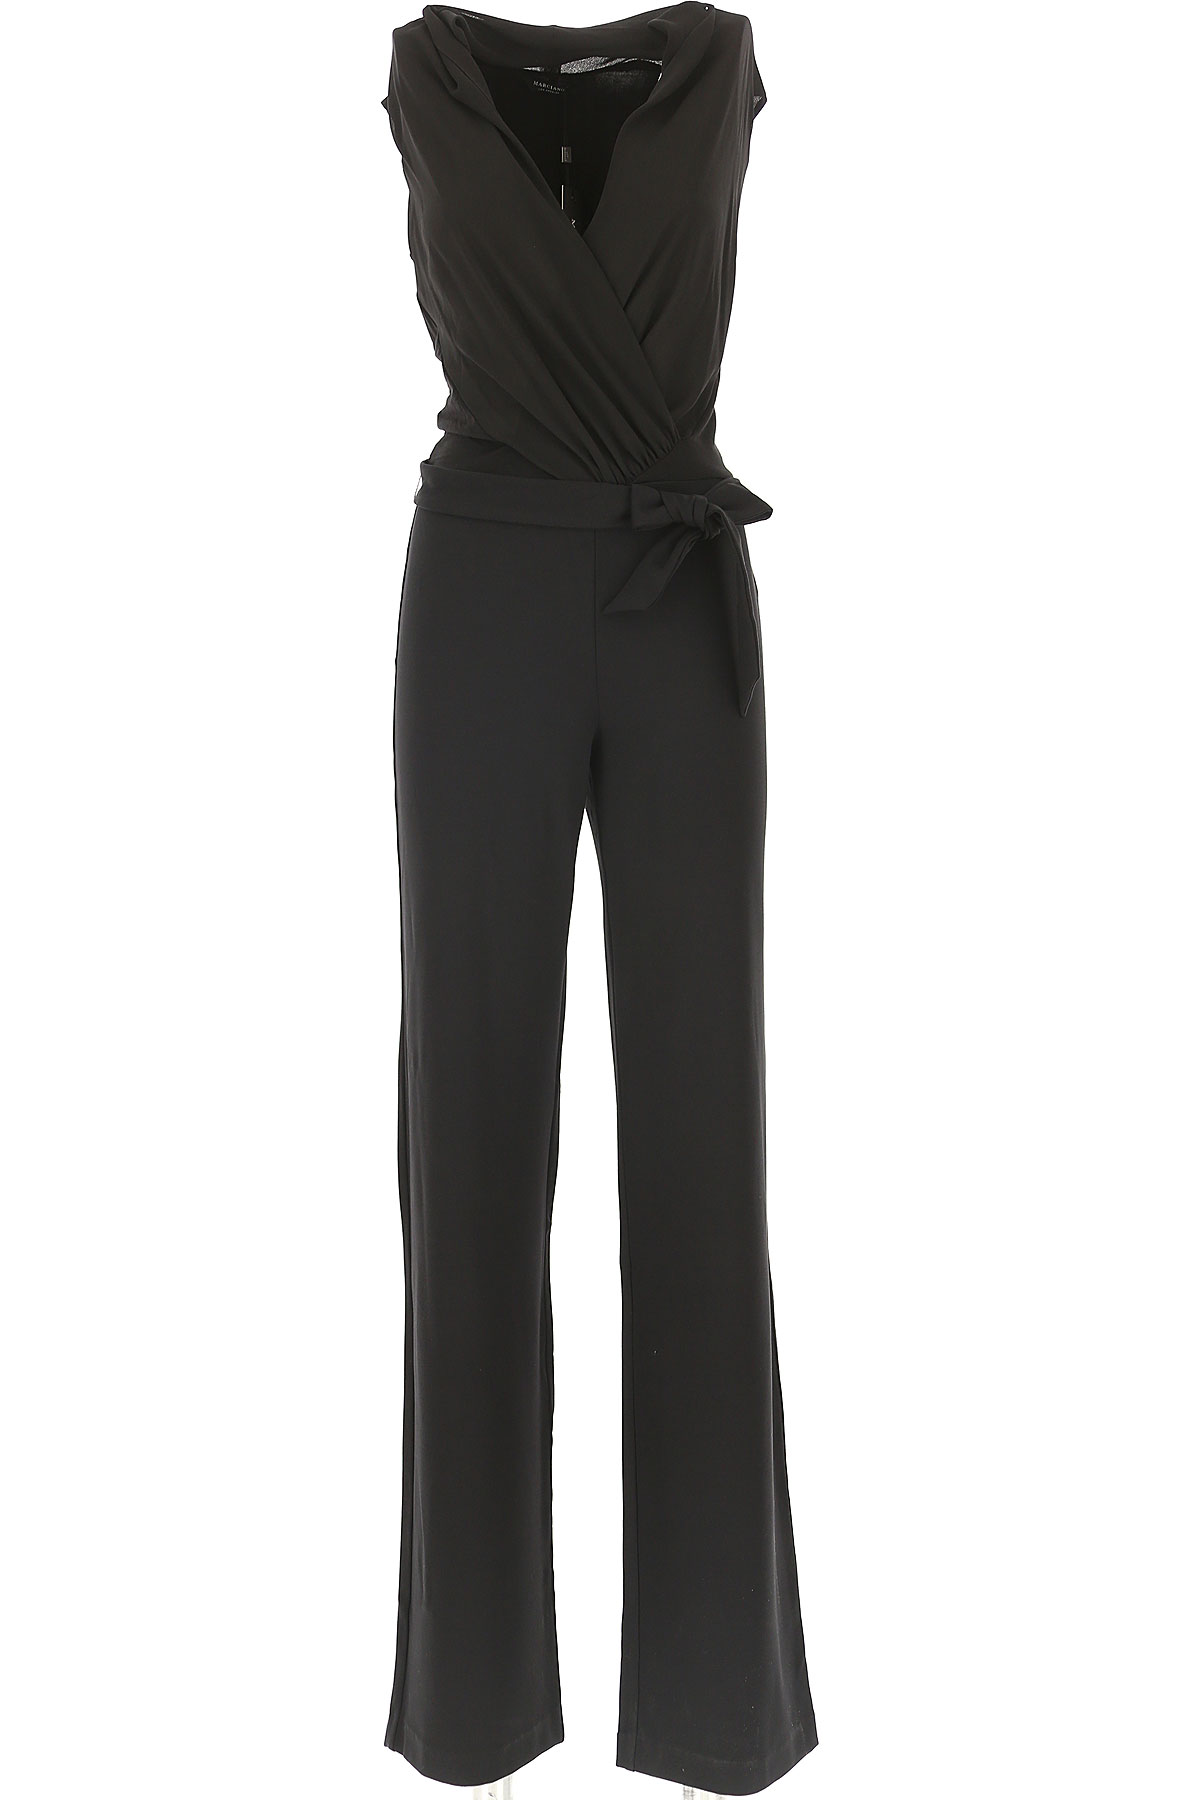 Guess Dress for Women, Evening Cocktail Party On Sale in Outlet, Black, polyester, 2019, 2 6